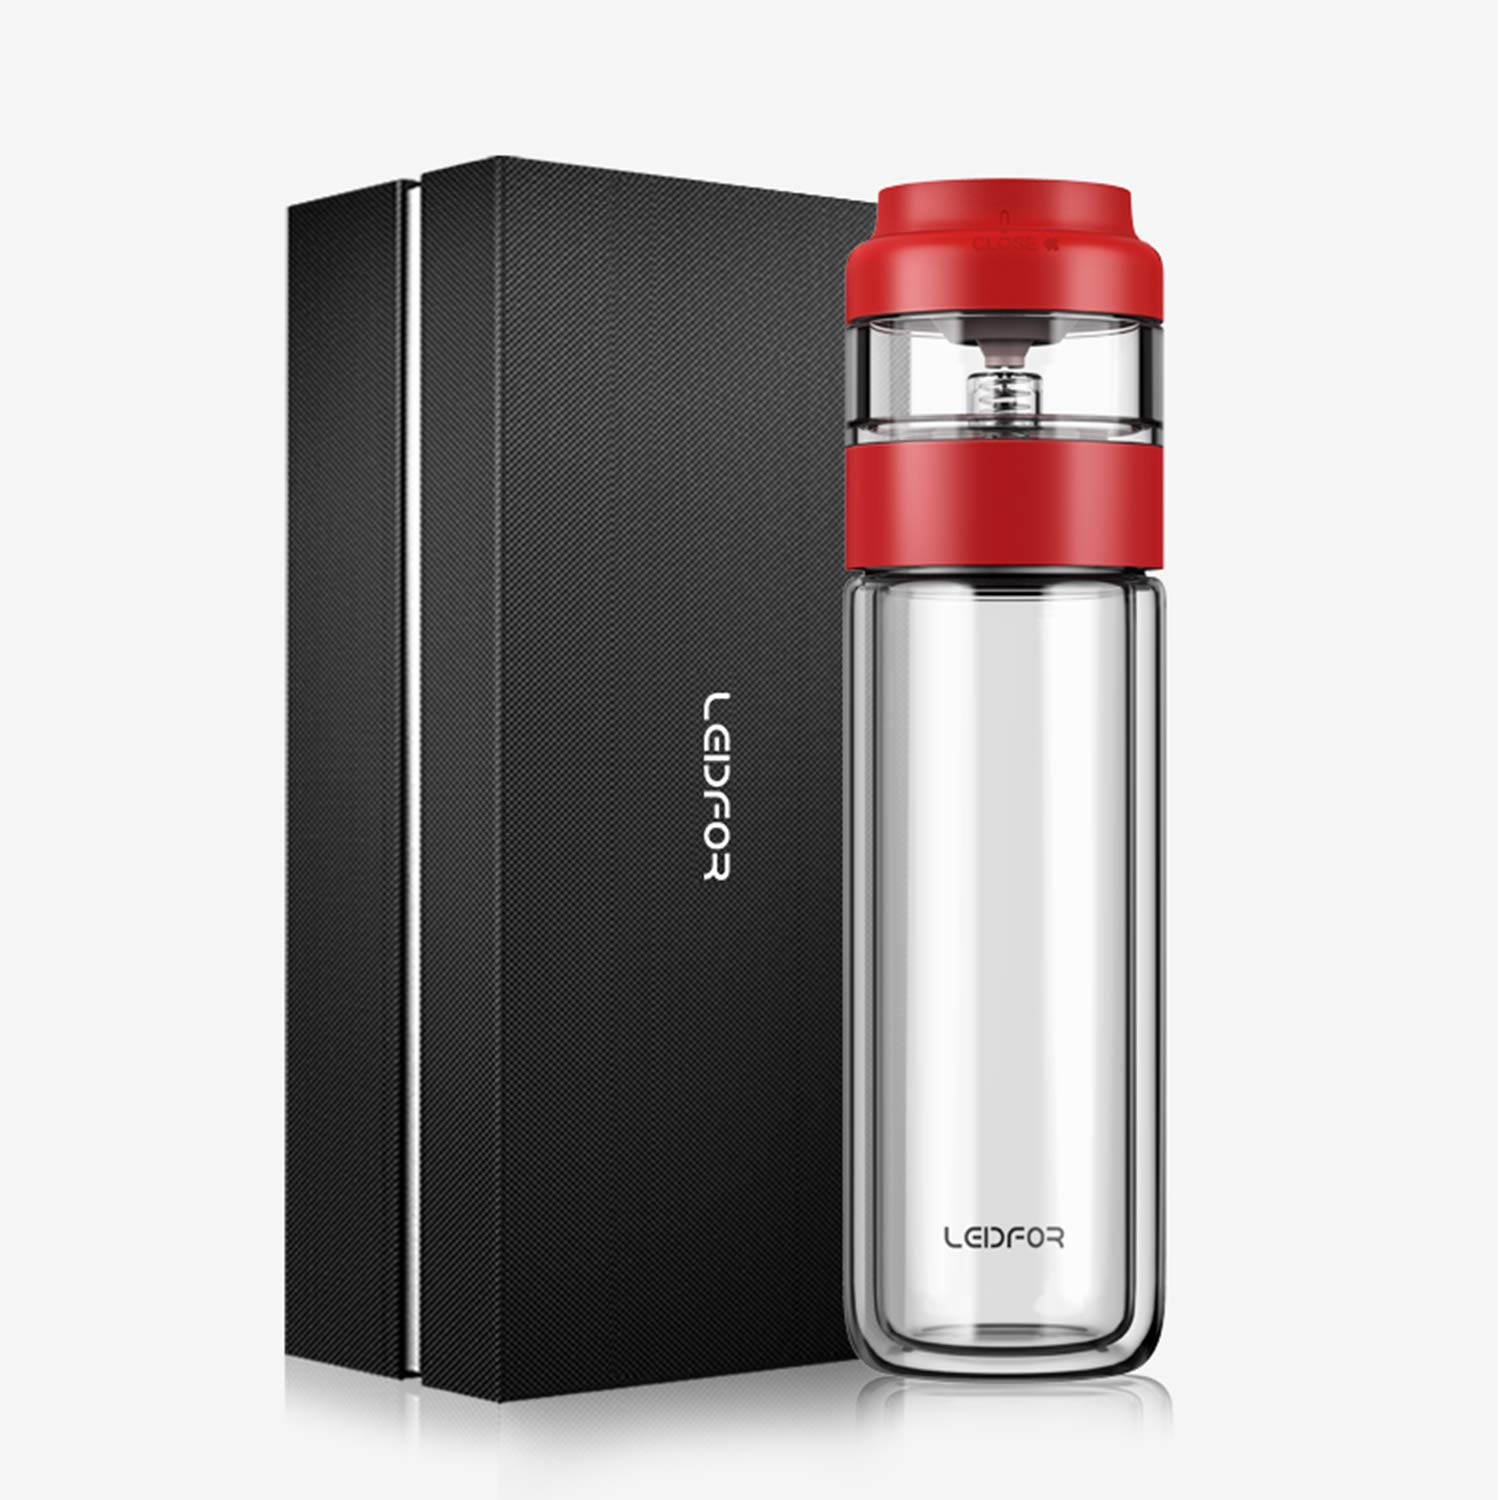 LEIDFOR Glass Tea Tumbler with Leaf-Tea Separation Infuser, Double Wall Glass Travel Tea Mug, Leakproof Tea Bottle with Strainer BPA Free Red 10 Ounce